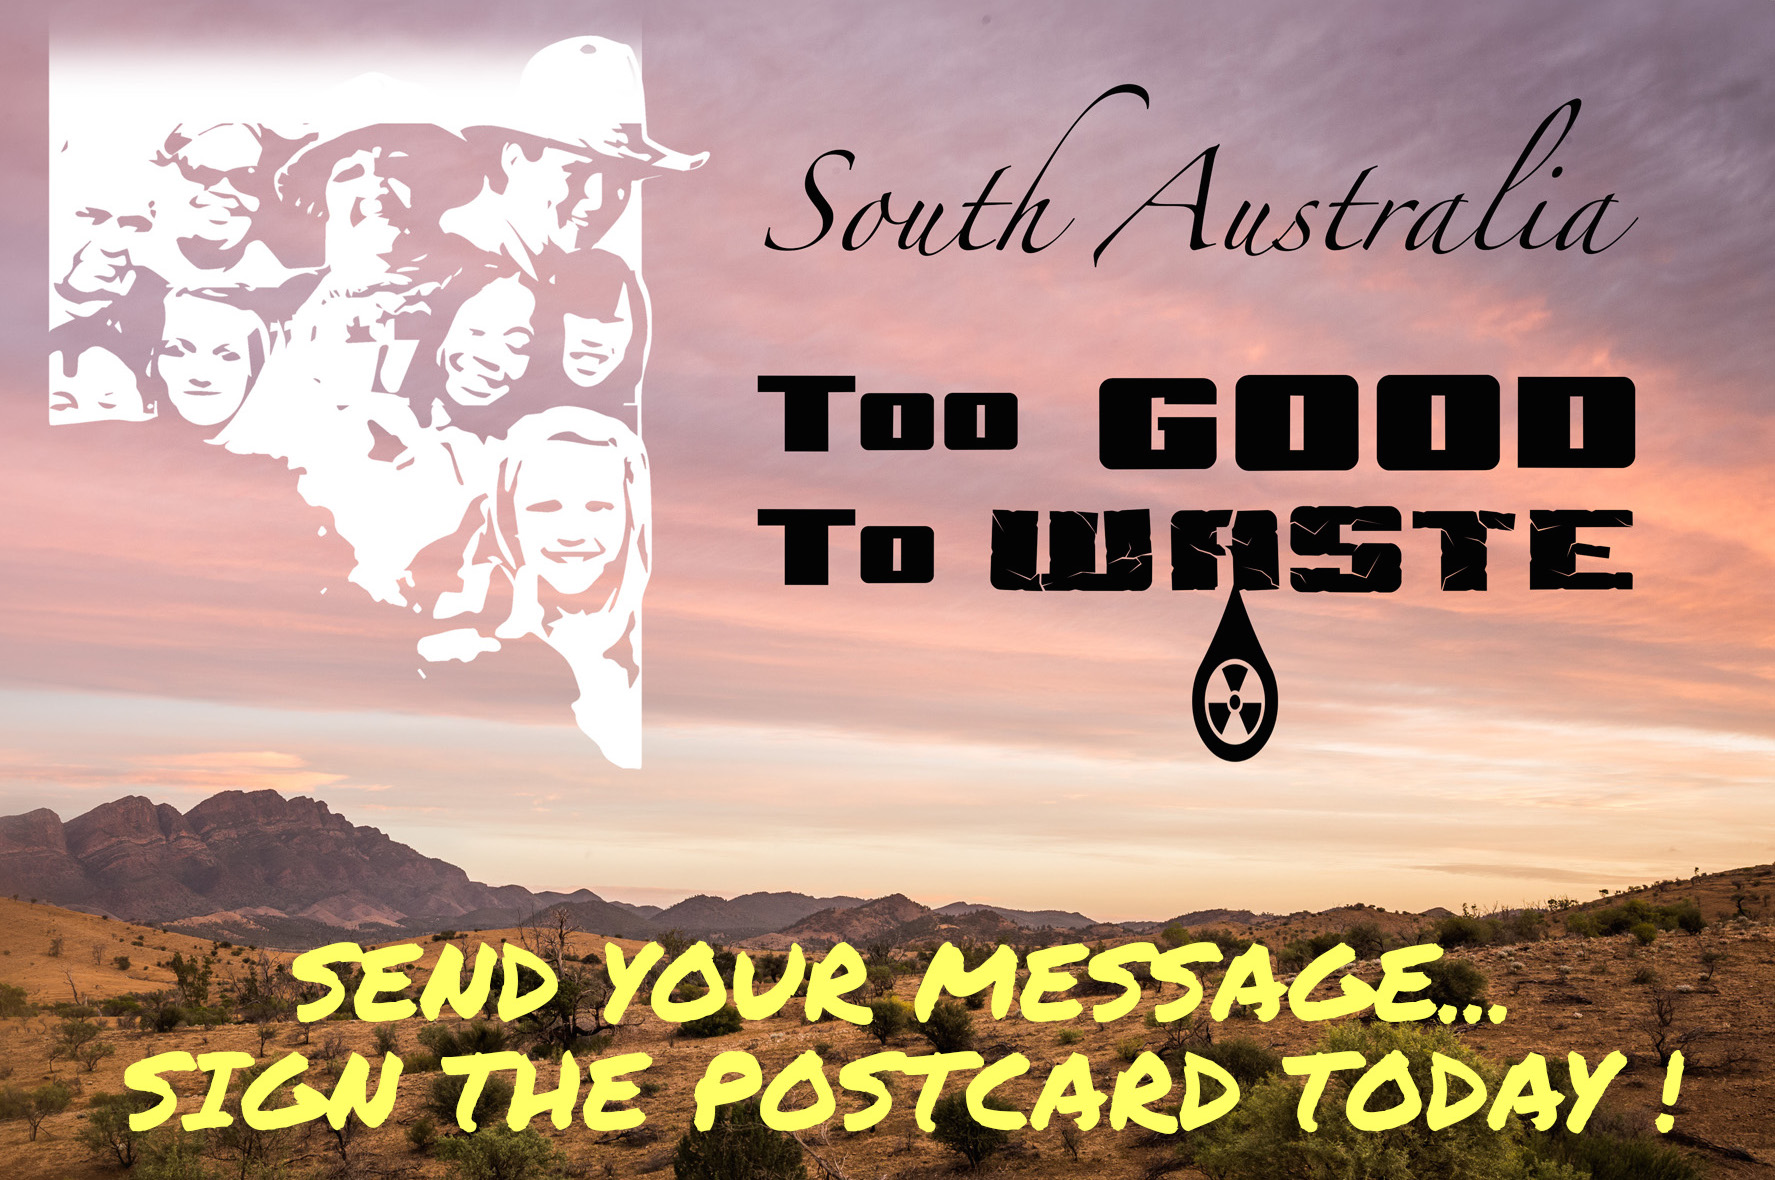 postcard-South-Australia-too-good-to-waste.jpg